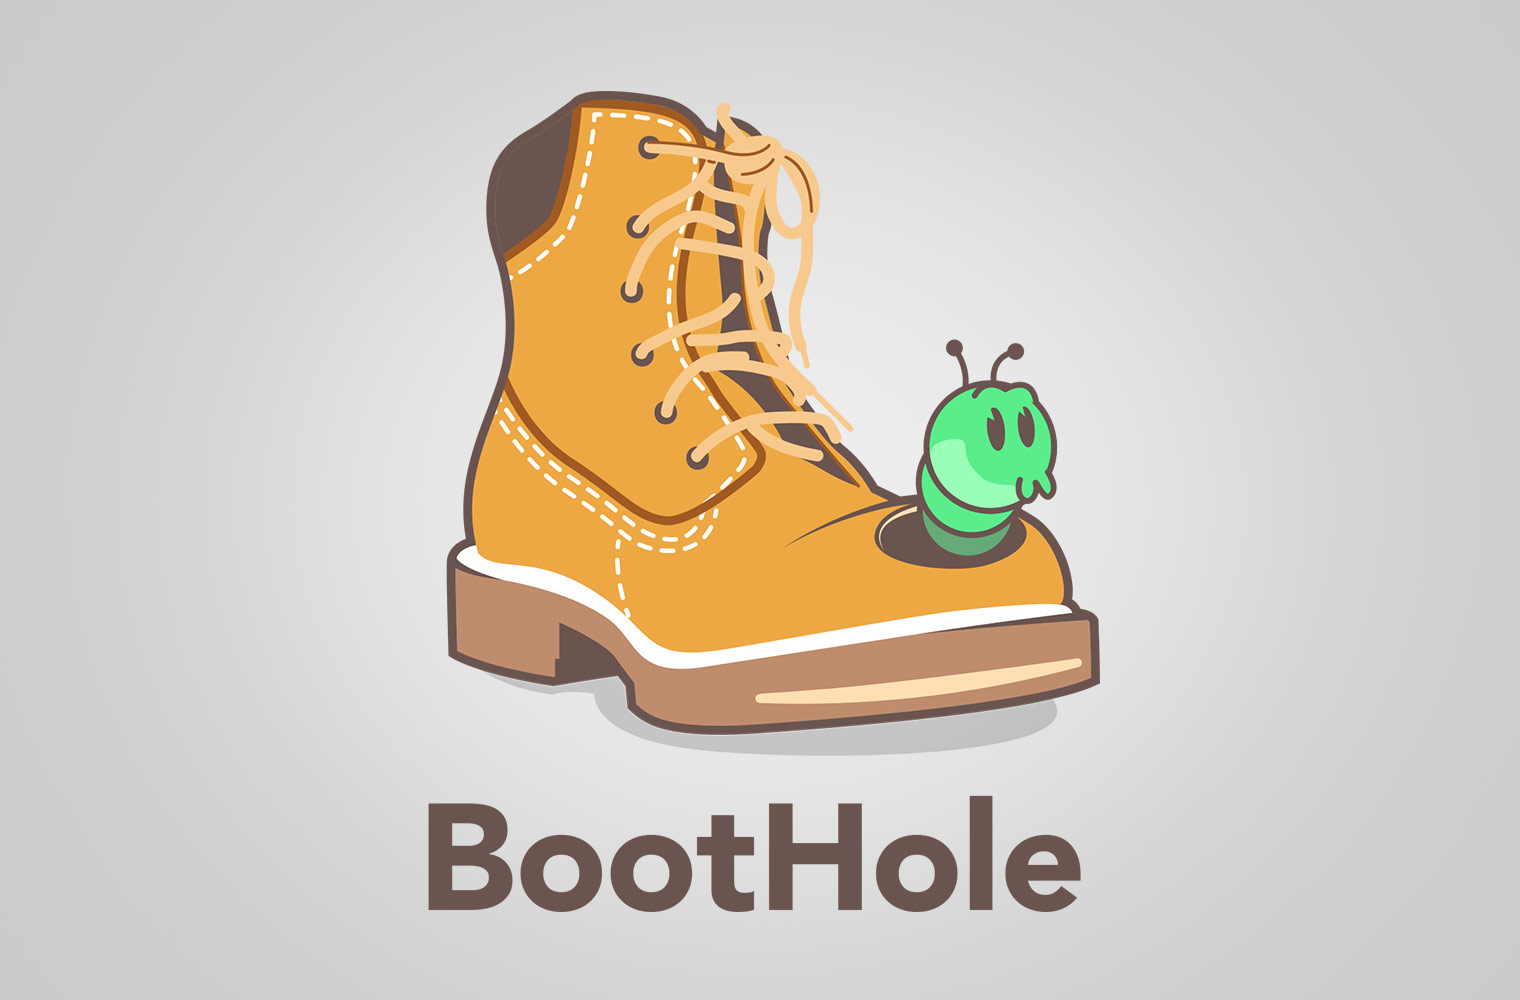 Researchers revealed BootHole vulnerability in the GRUB2 bootloader, both Windows and Linux systems are affected